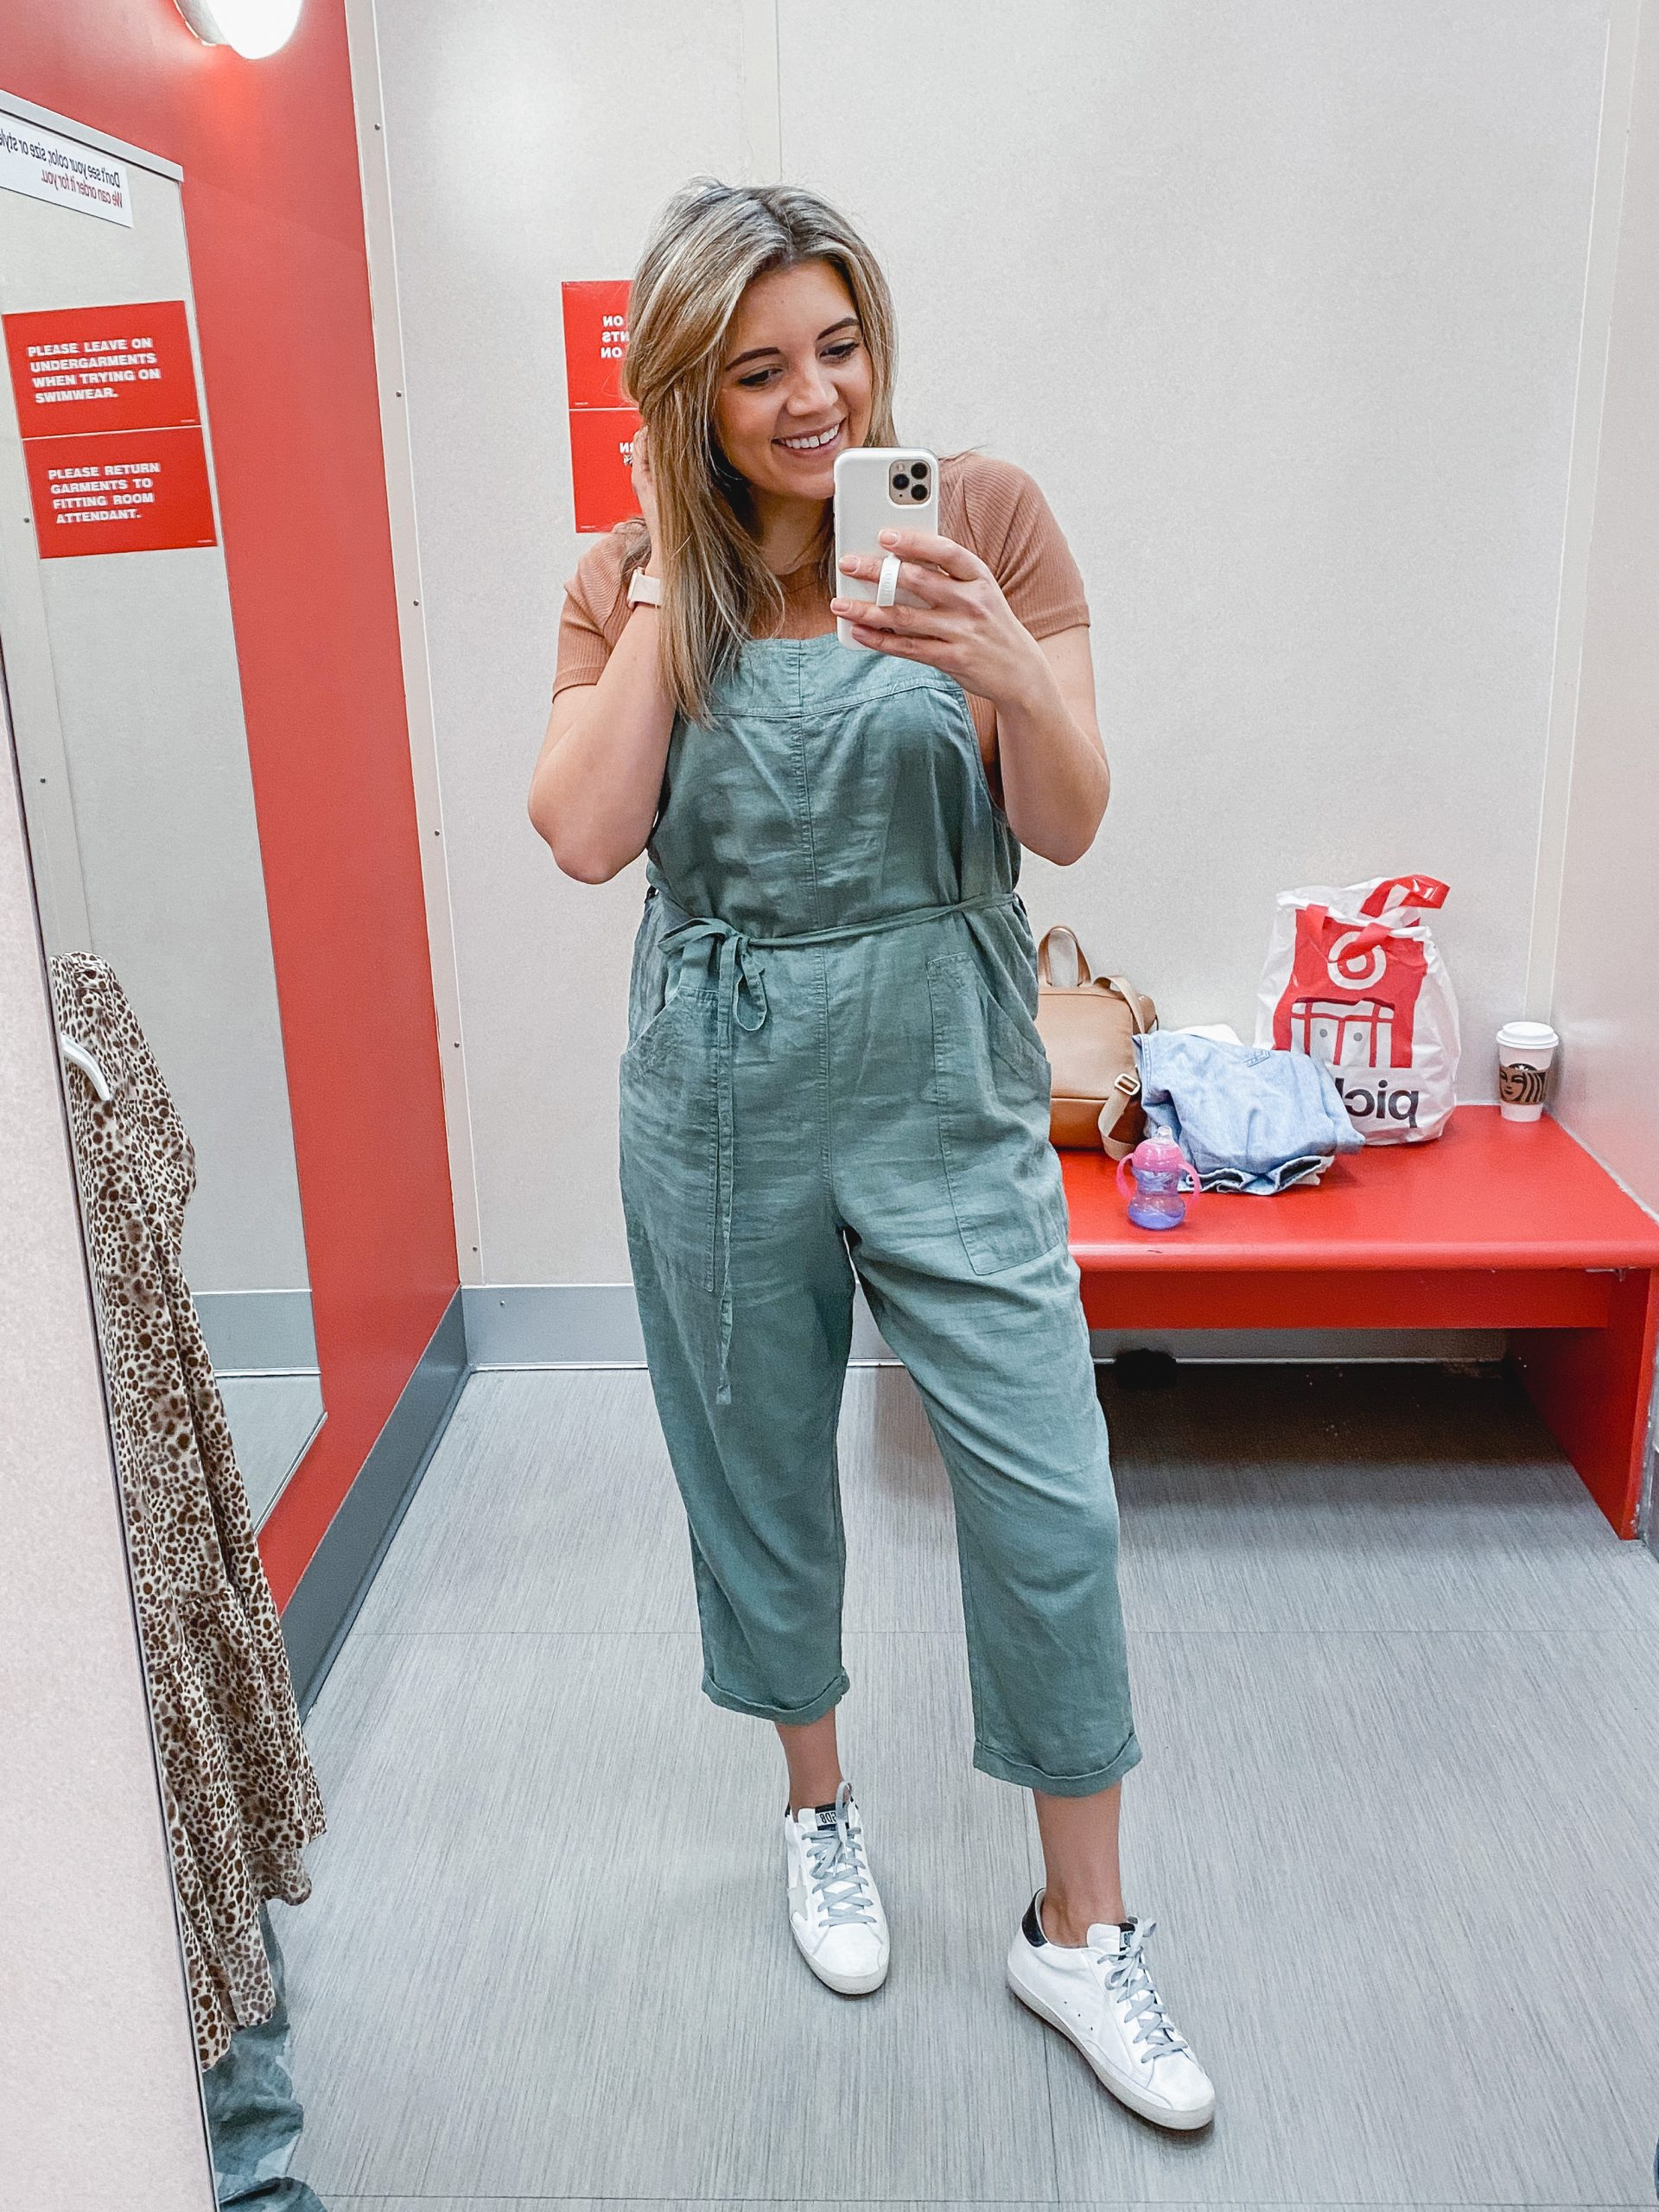 Virginia blogger, Lauren Dix, shares over ten new spring 2020 Target dresses, jumpsuits and more!